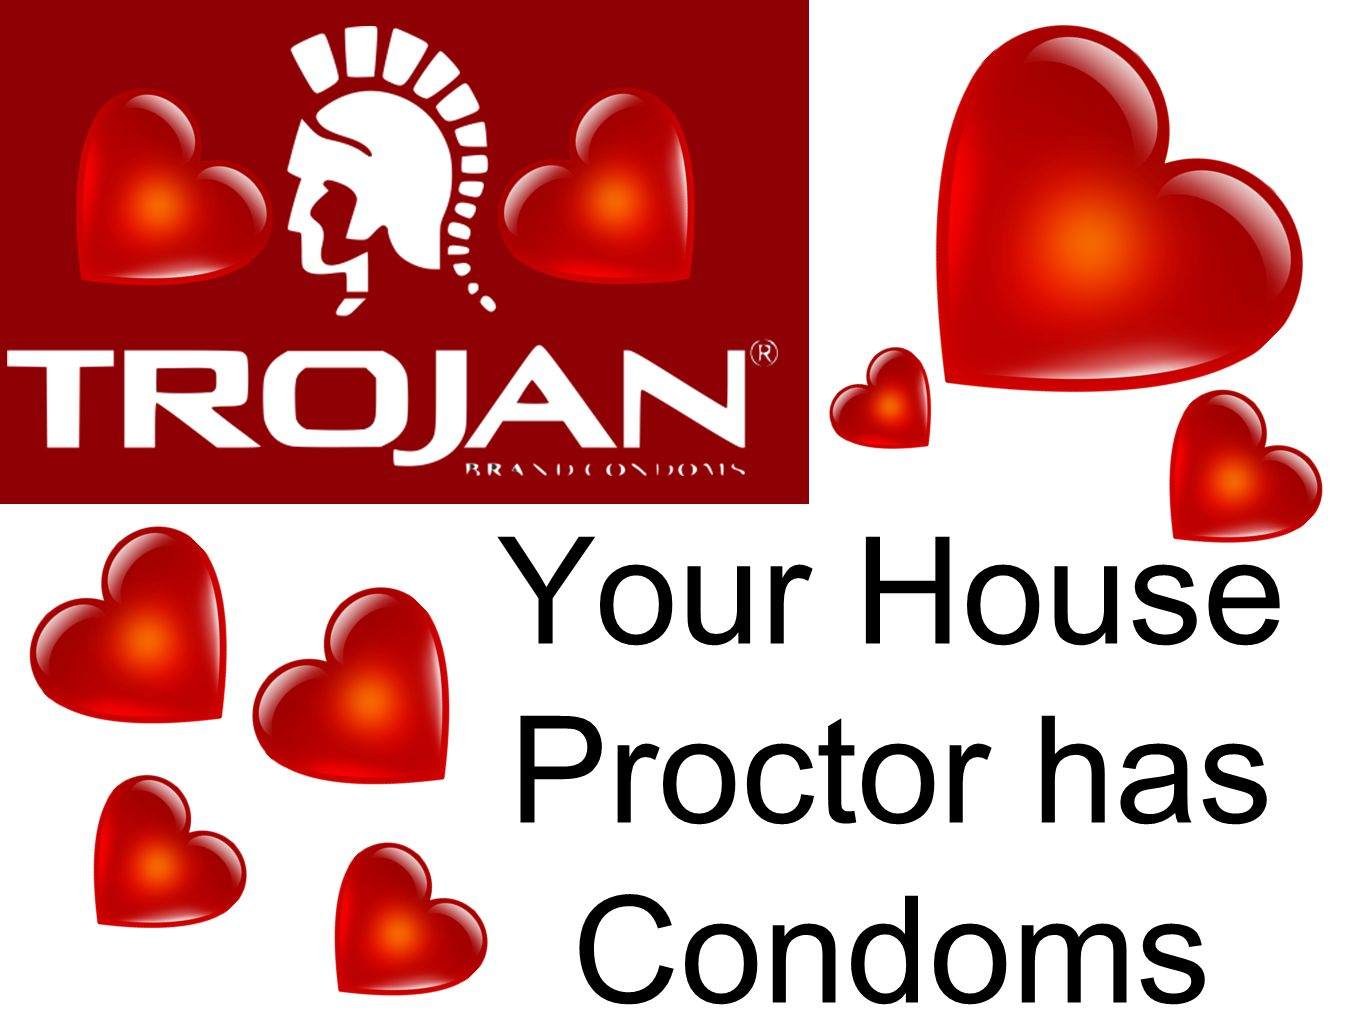 Your House Proctor has Condoms